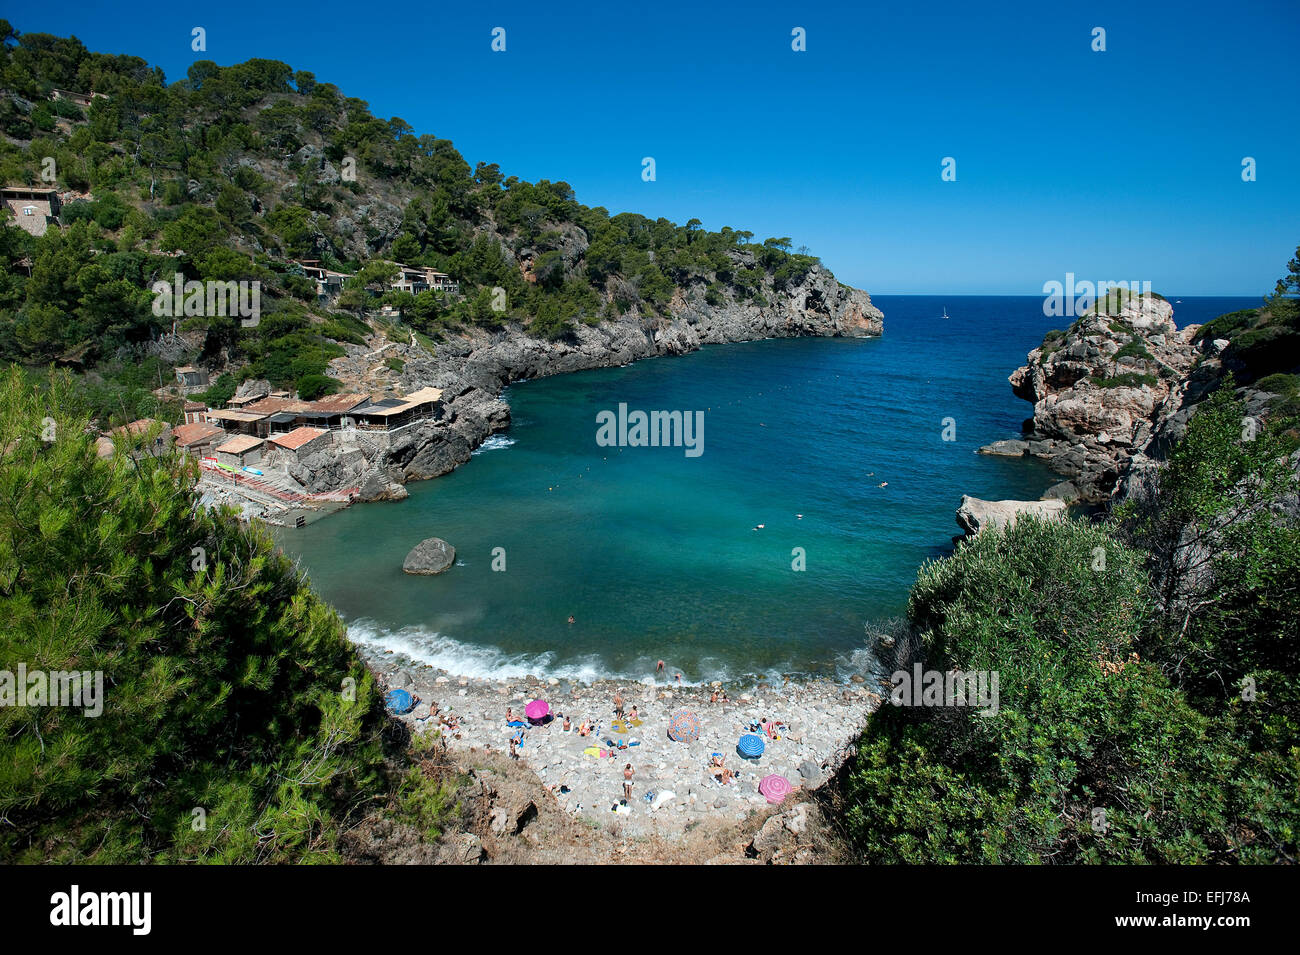 Beach, Deia, Mallorca, Balearics, Spain Stock Photo: 78462170 - Alamy